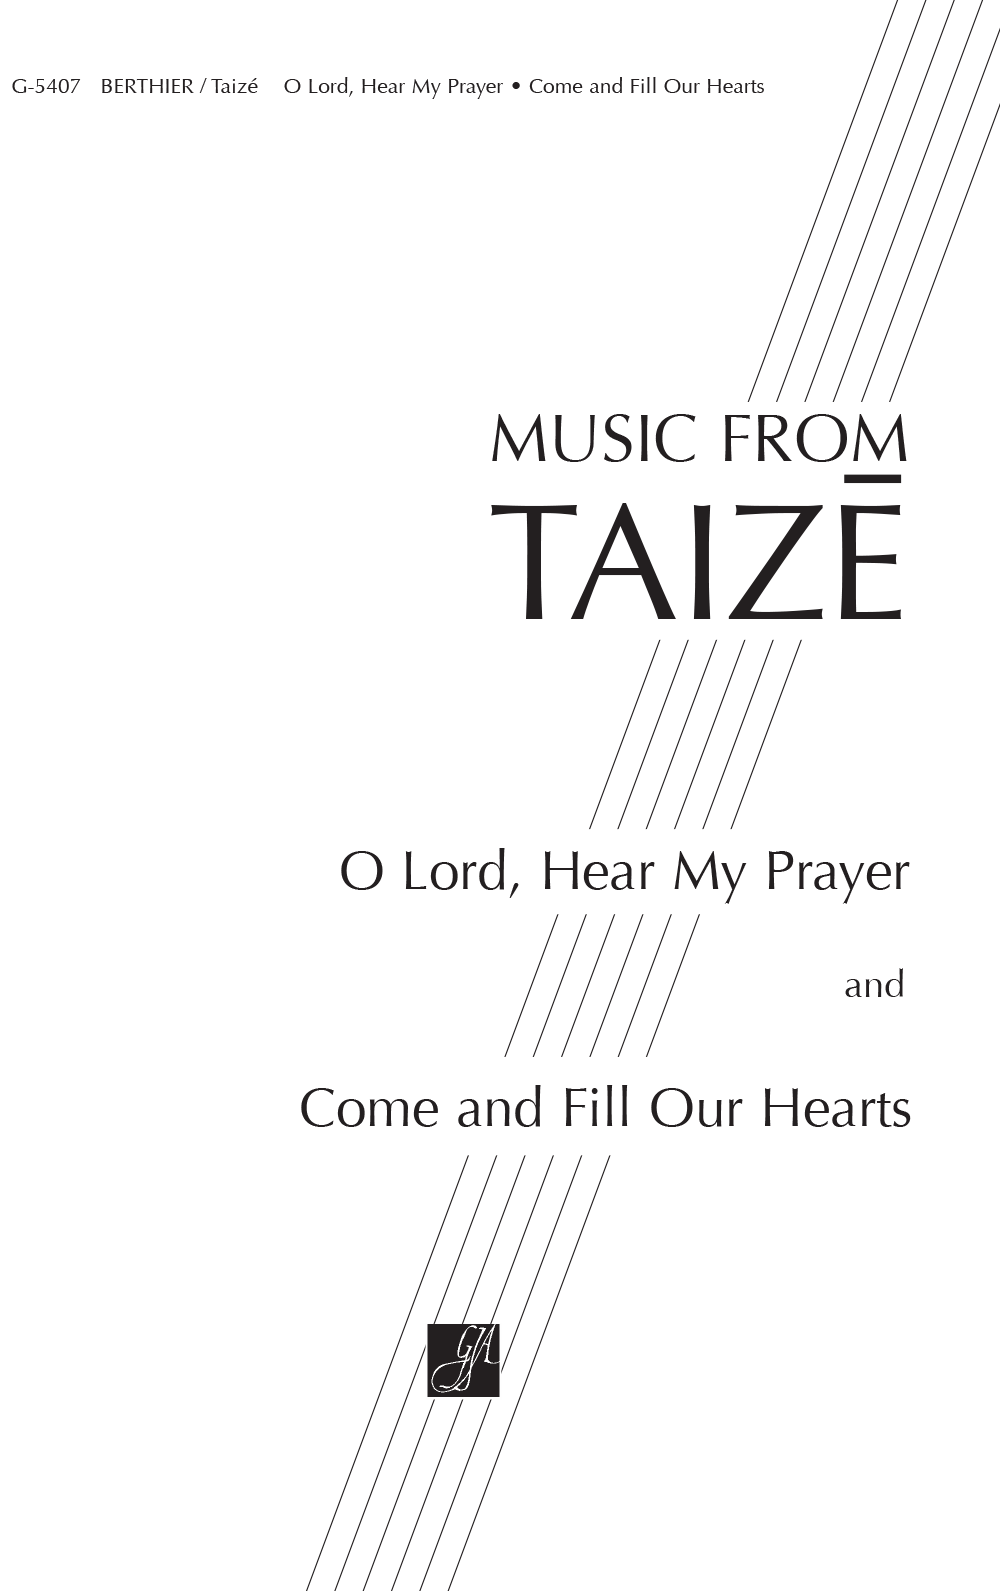 O Lord Hear My Prayer Come And Fill Our Hearts